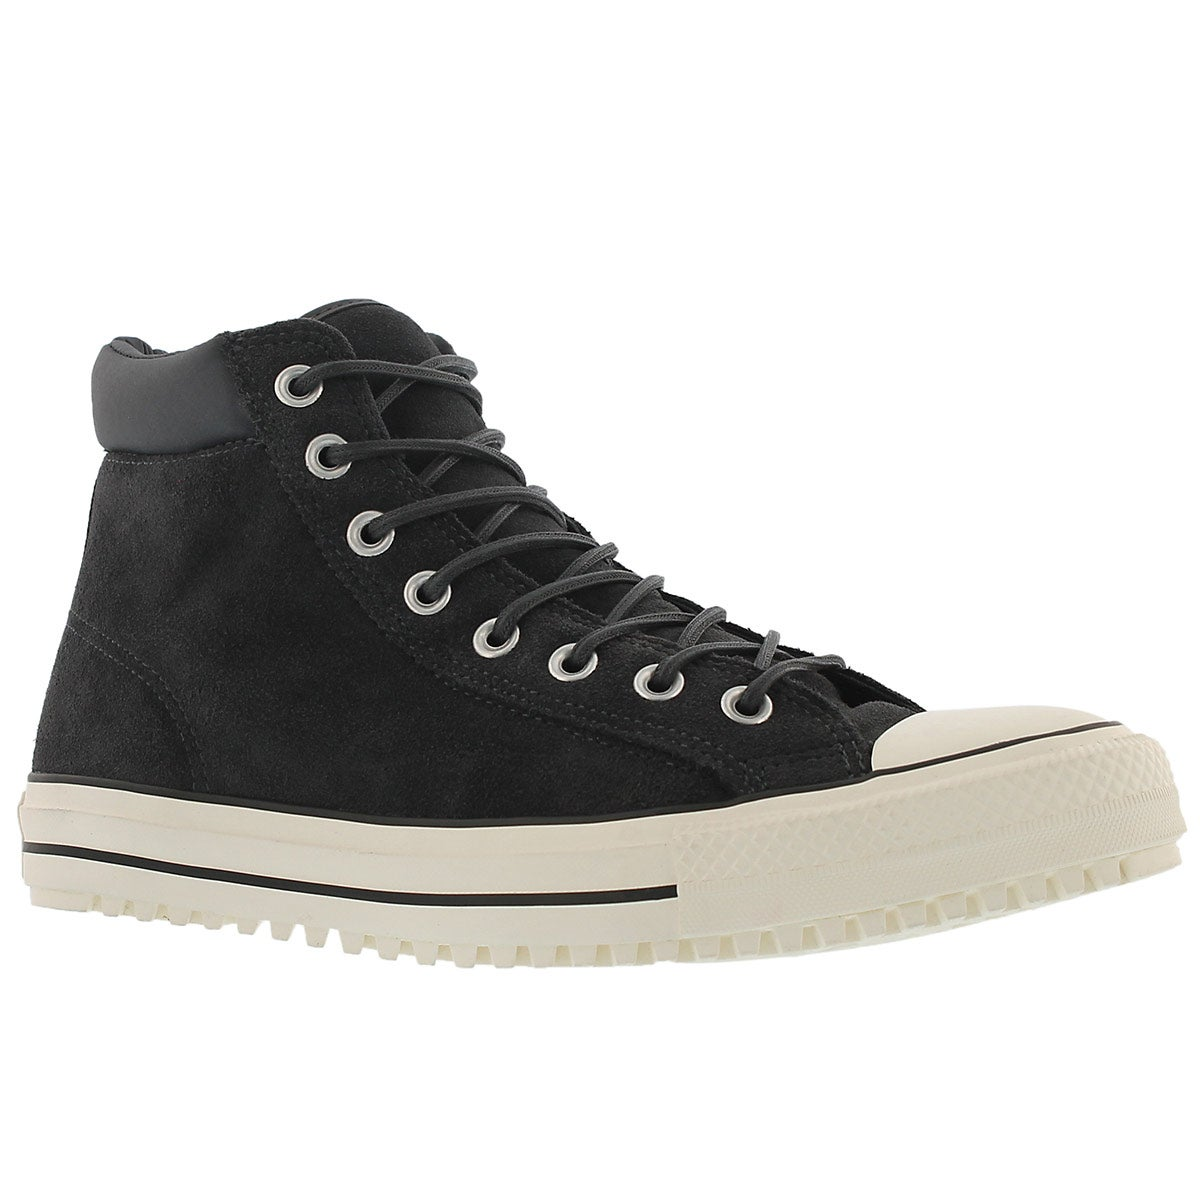 Mns CT A/S Converse PC M blk boot